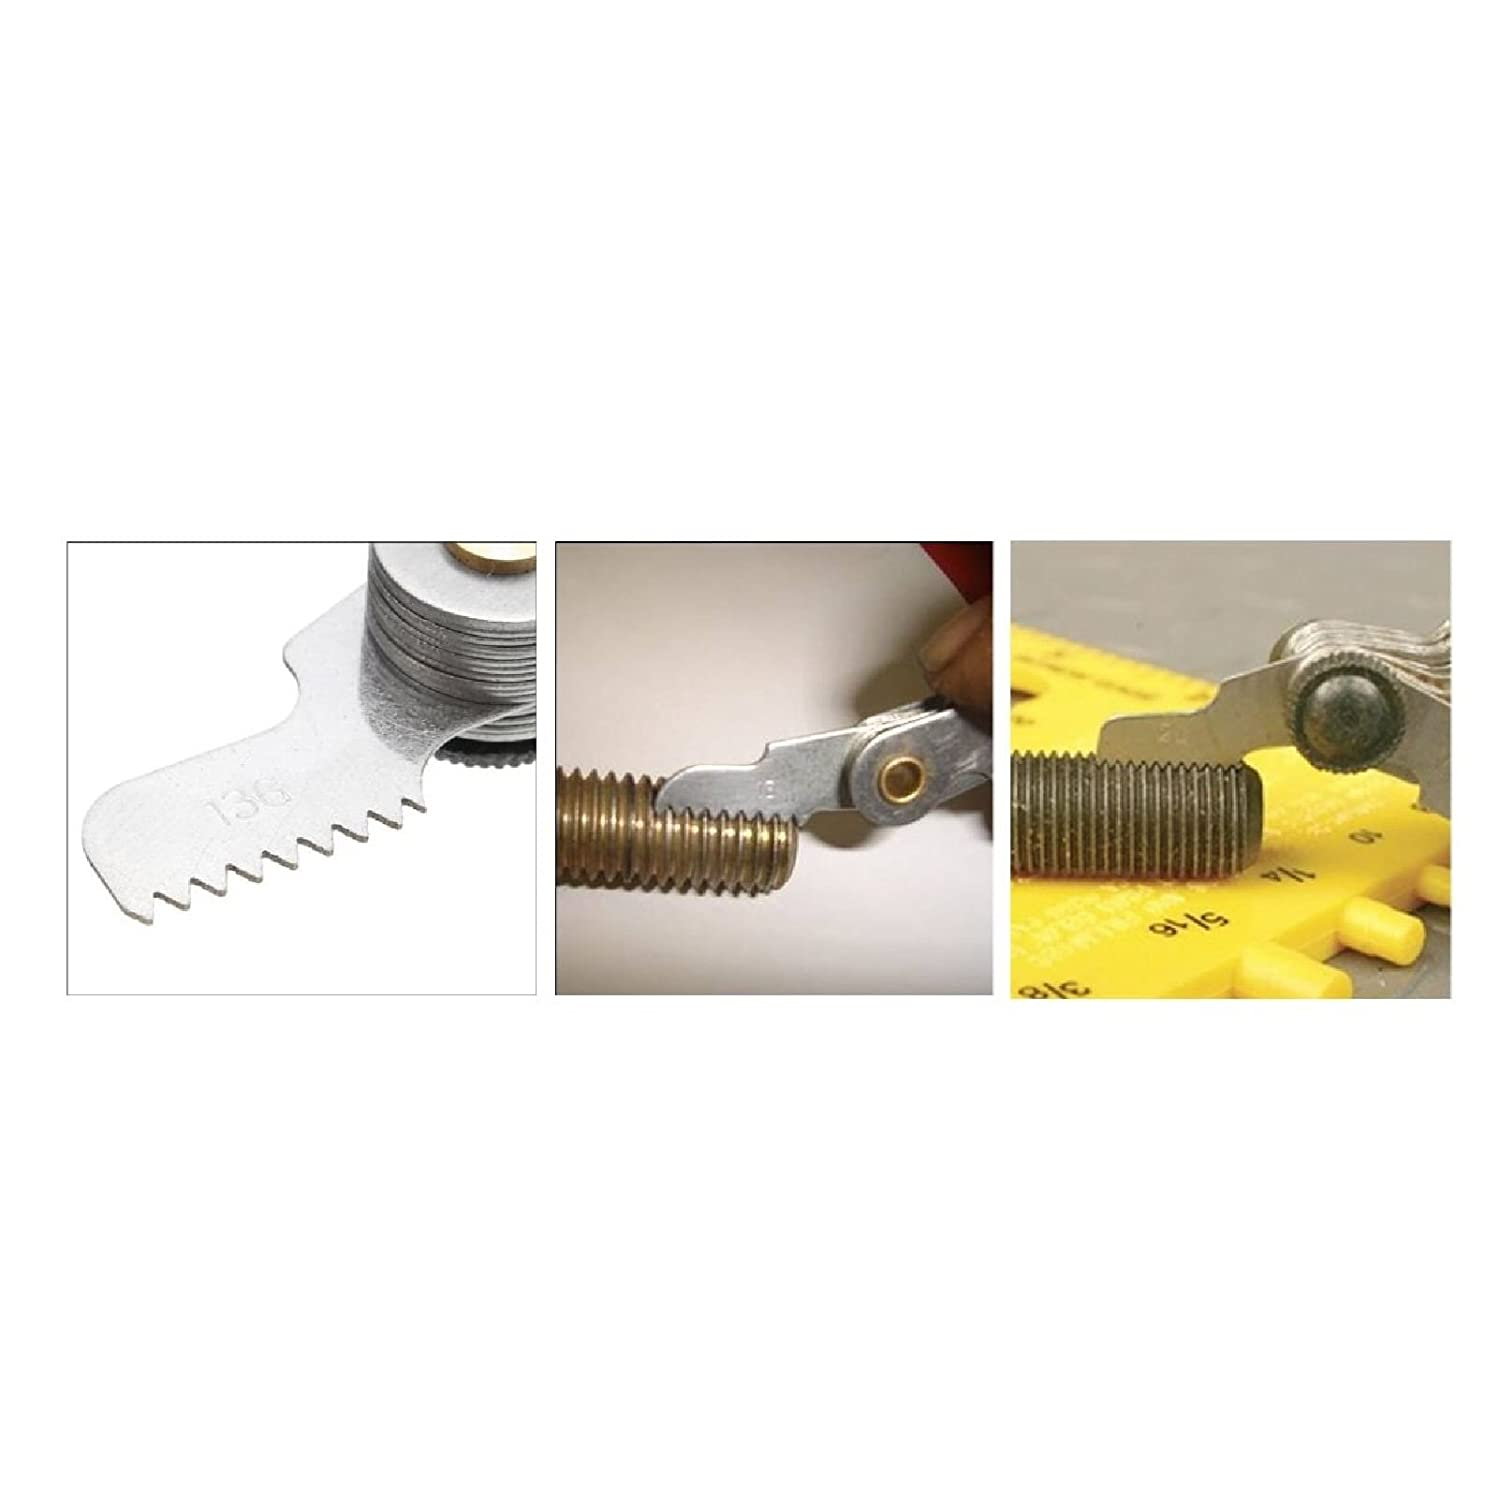 52 Blade Screw Pitch Thread Gauge for Measuring Imperial//Metric Nuts /& Bolts